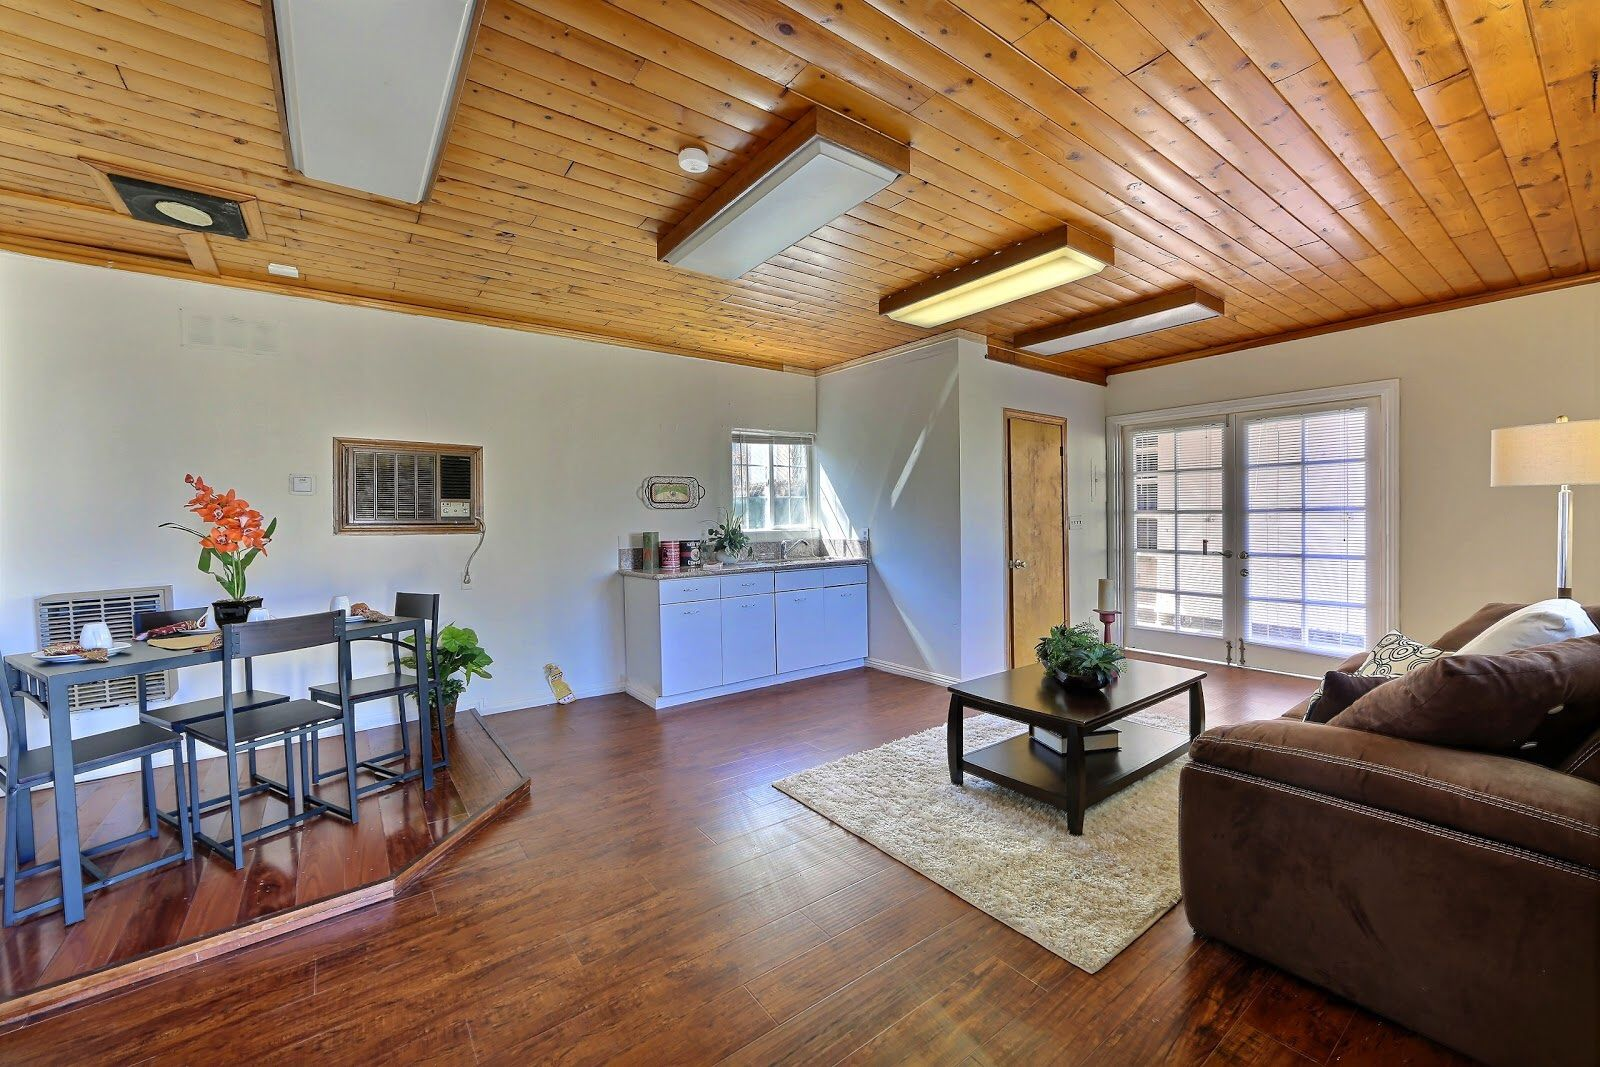 Come Join Us For A Super OpenHouse @ 5127 Alhambra Ave, in Los Angeles, CA 90032 On this Saturday October 11 @ 12PM to 2PM. 2Bedrooms/1Bathroom. 1,510/5,009sqft. For Sale $299,980 http://www.zillow.com/homedetails/5127-Alhambra-Ave-Los-Angeles-CA-90032/2115806566_zpid/